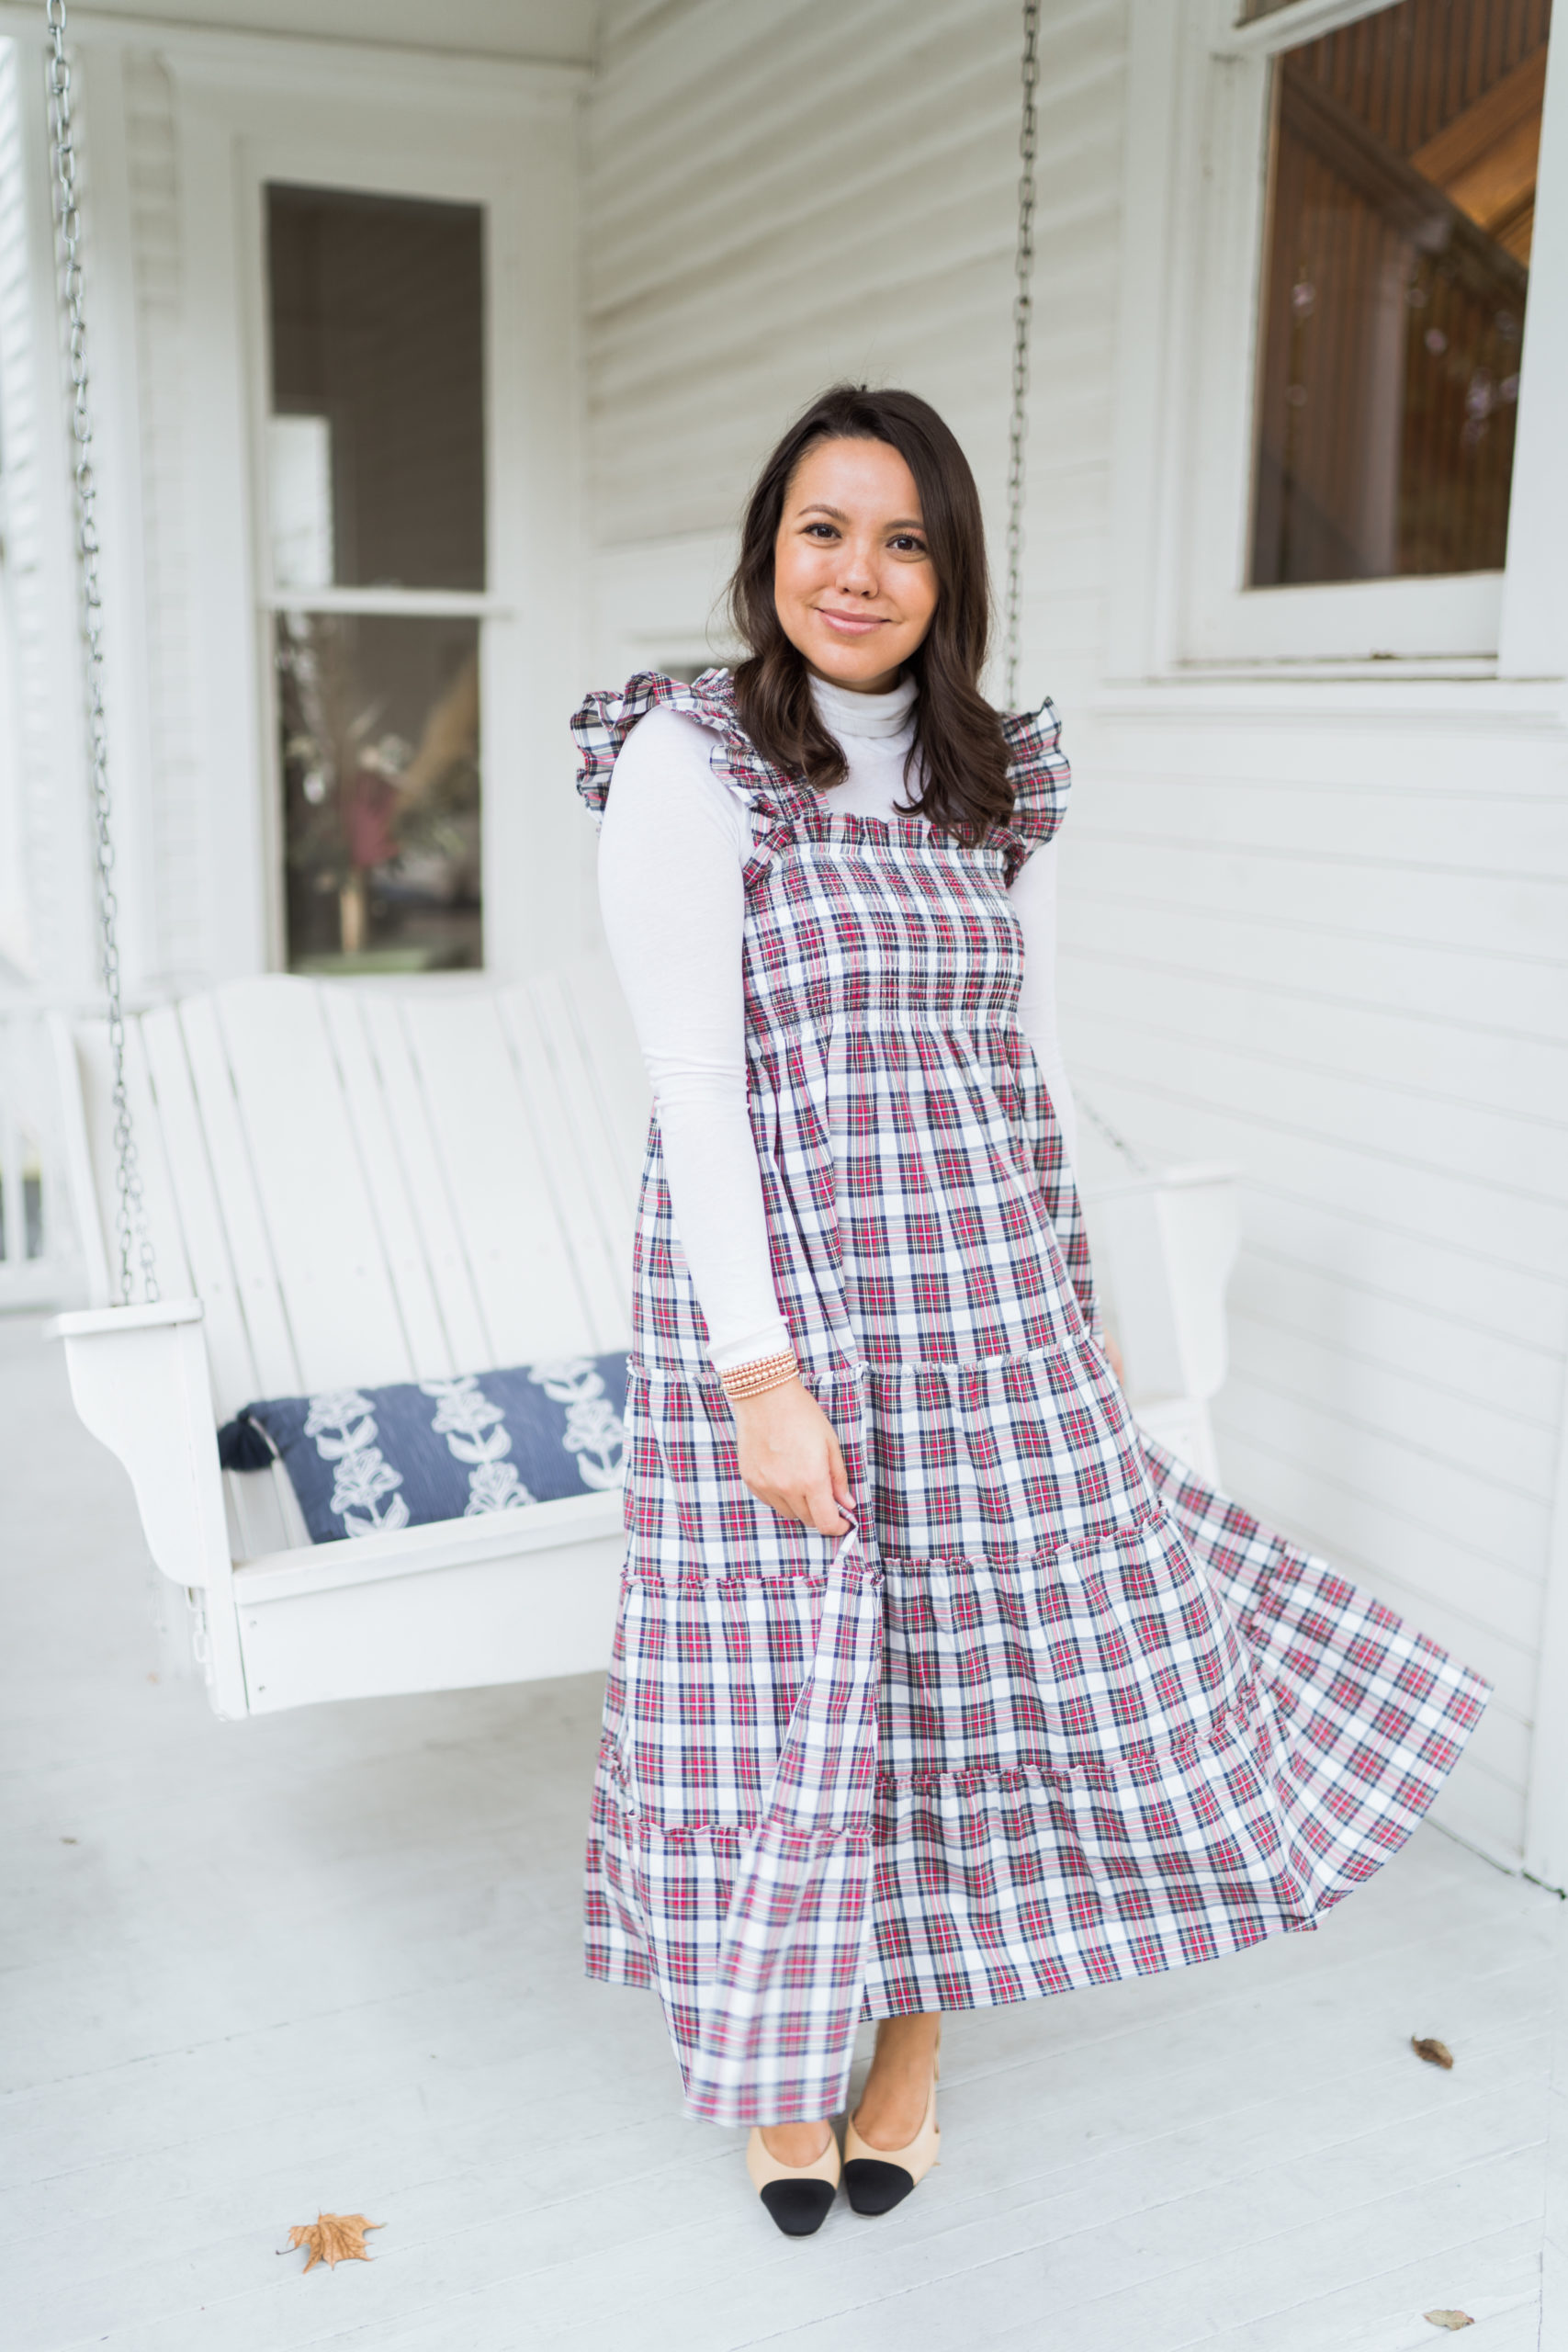 How to style the Hill House Ellie nap dress